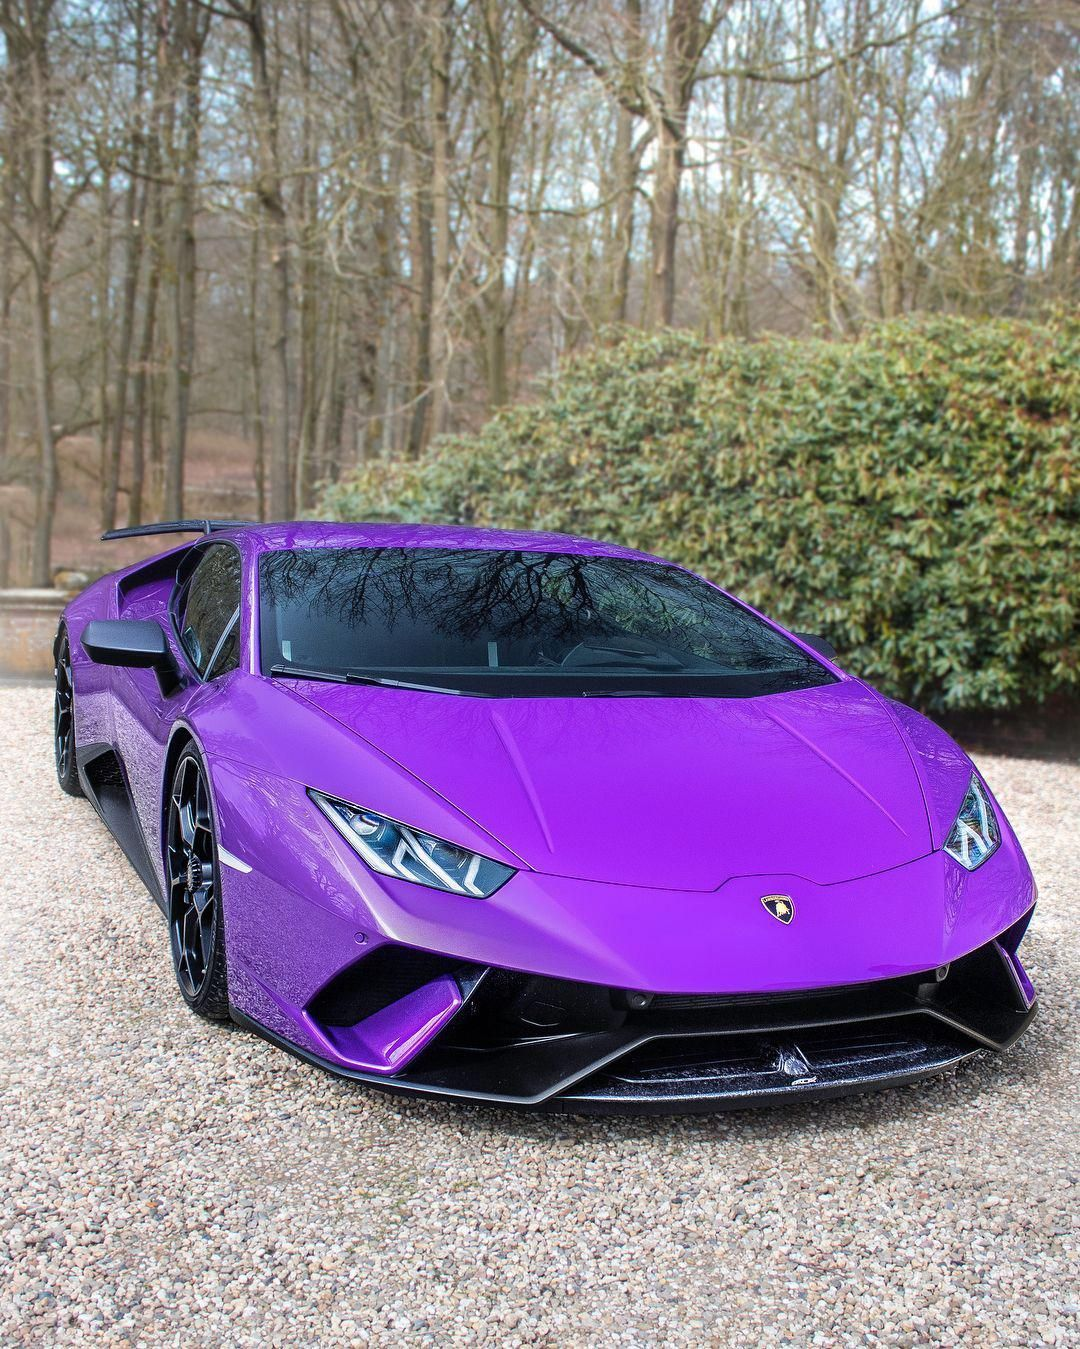 Top 20 Fastest Cars In The World Best Picture Fastest Sports Cars Cool Sports Cars Lamborghini Cars Best Luxury Cars